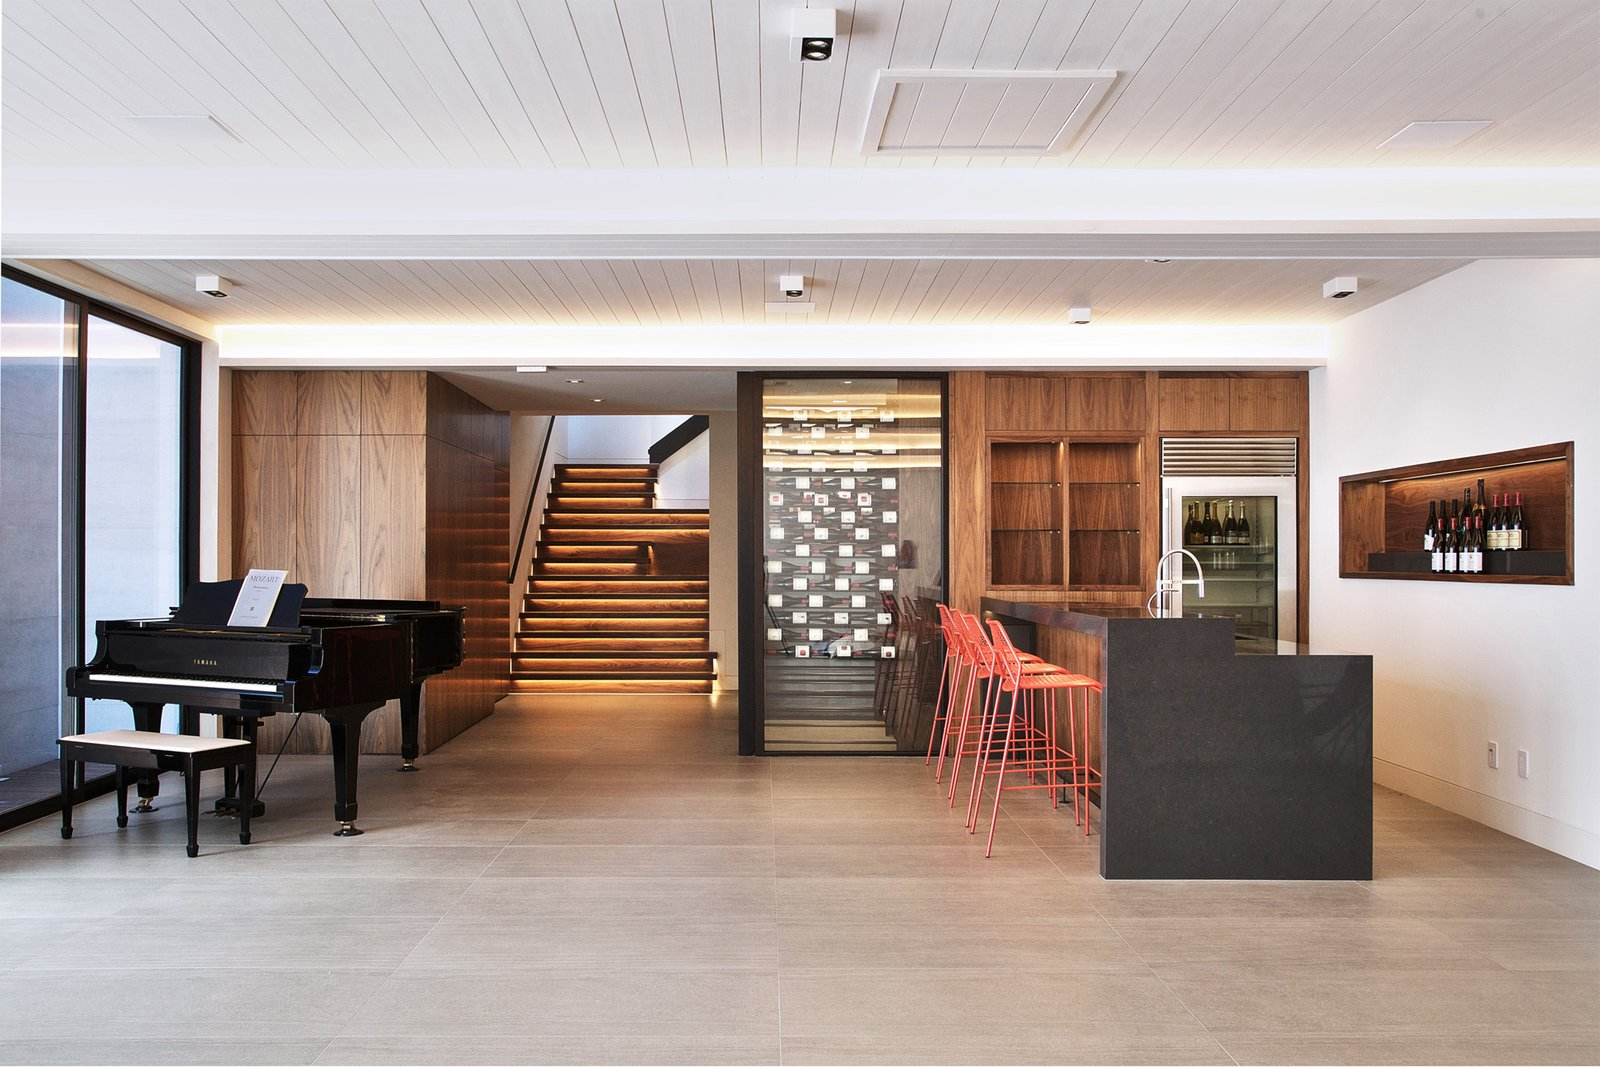 The Great Room - wet bar, wine room, entertainment space   Lyon Residence by Diego Pacheco Design Practice